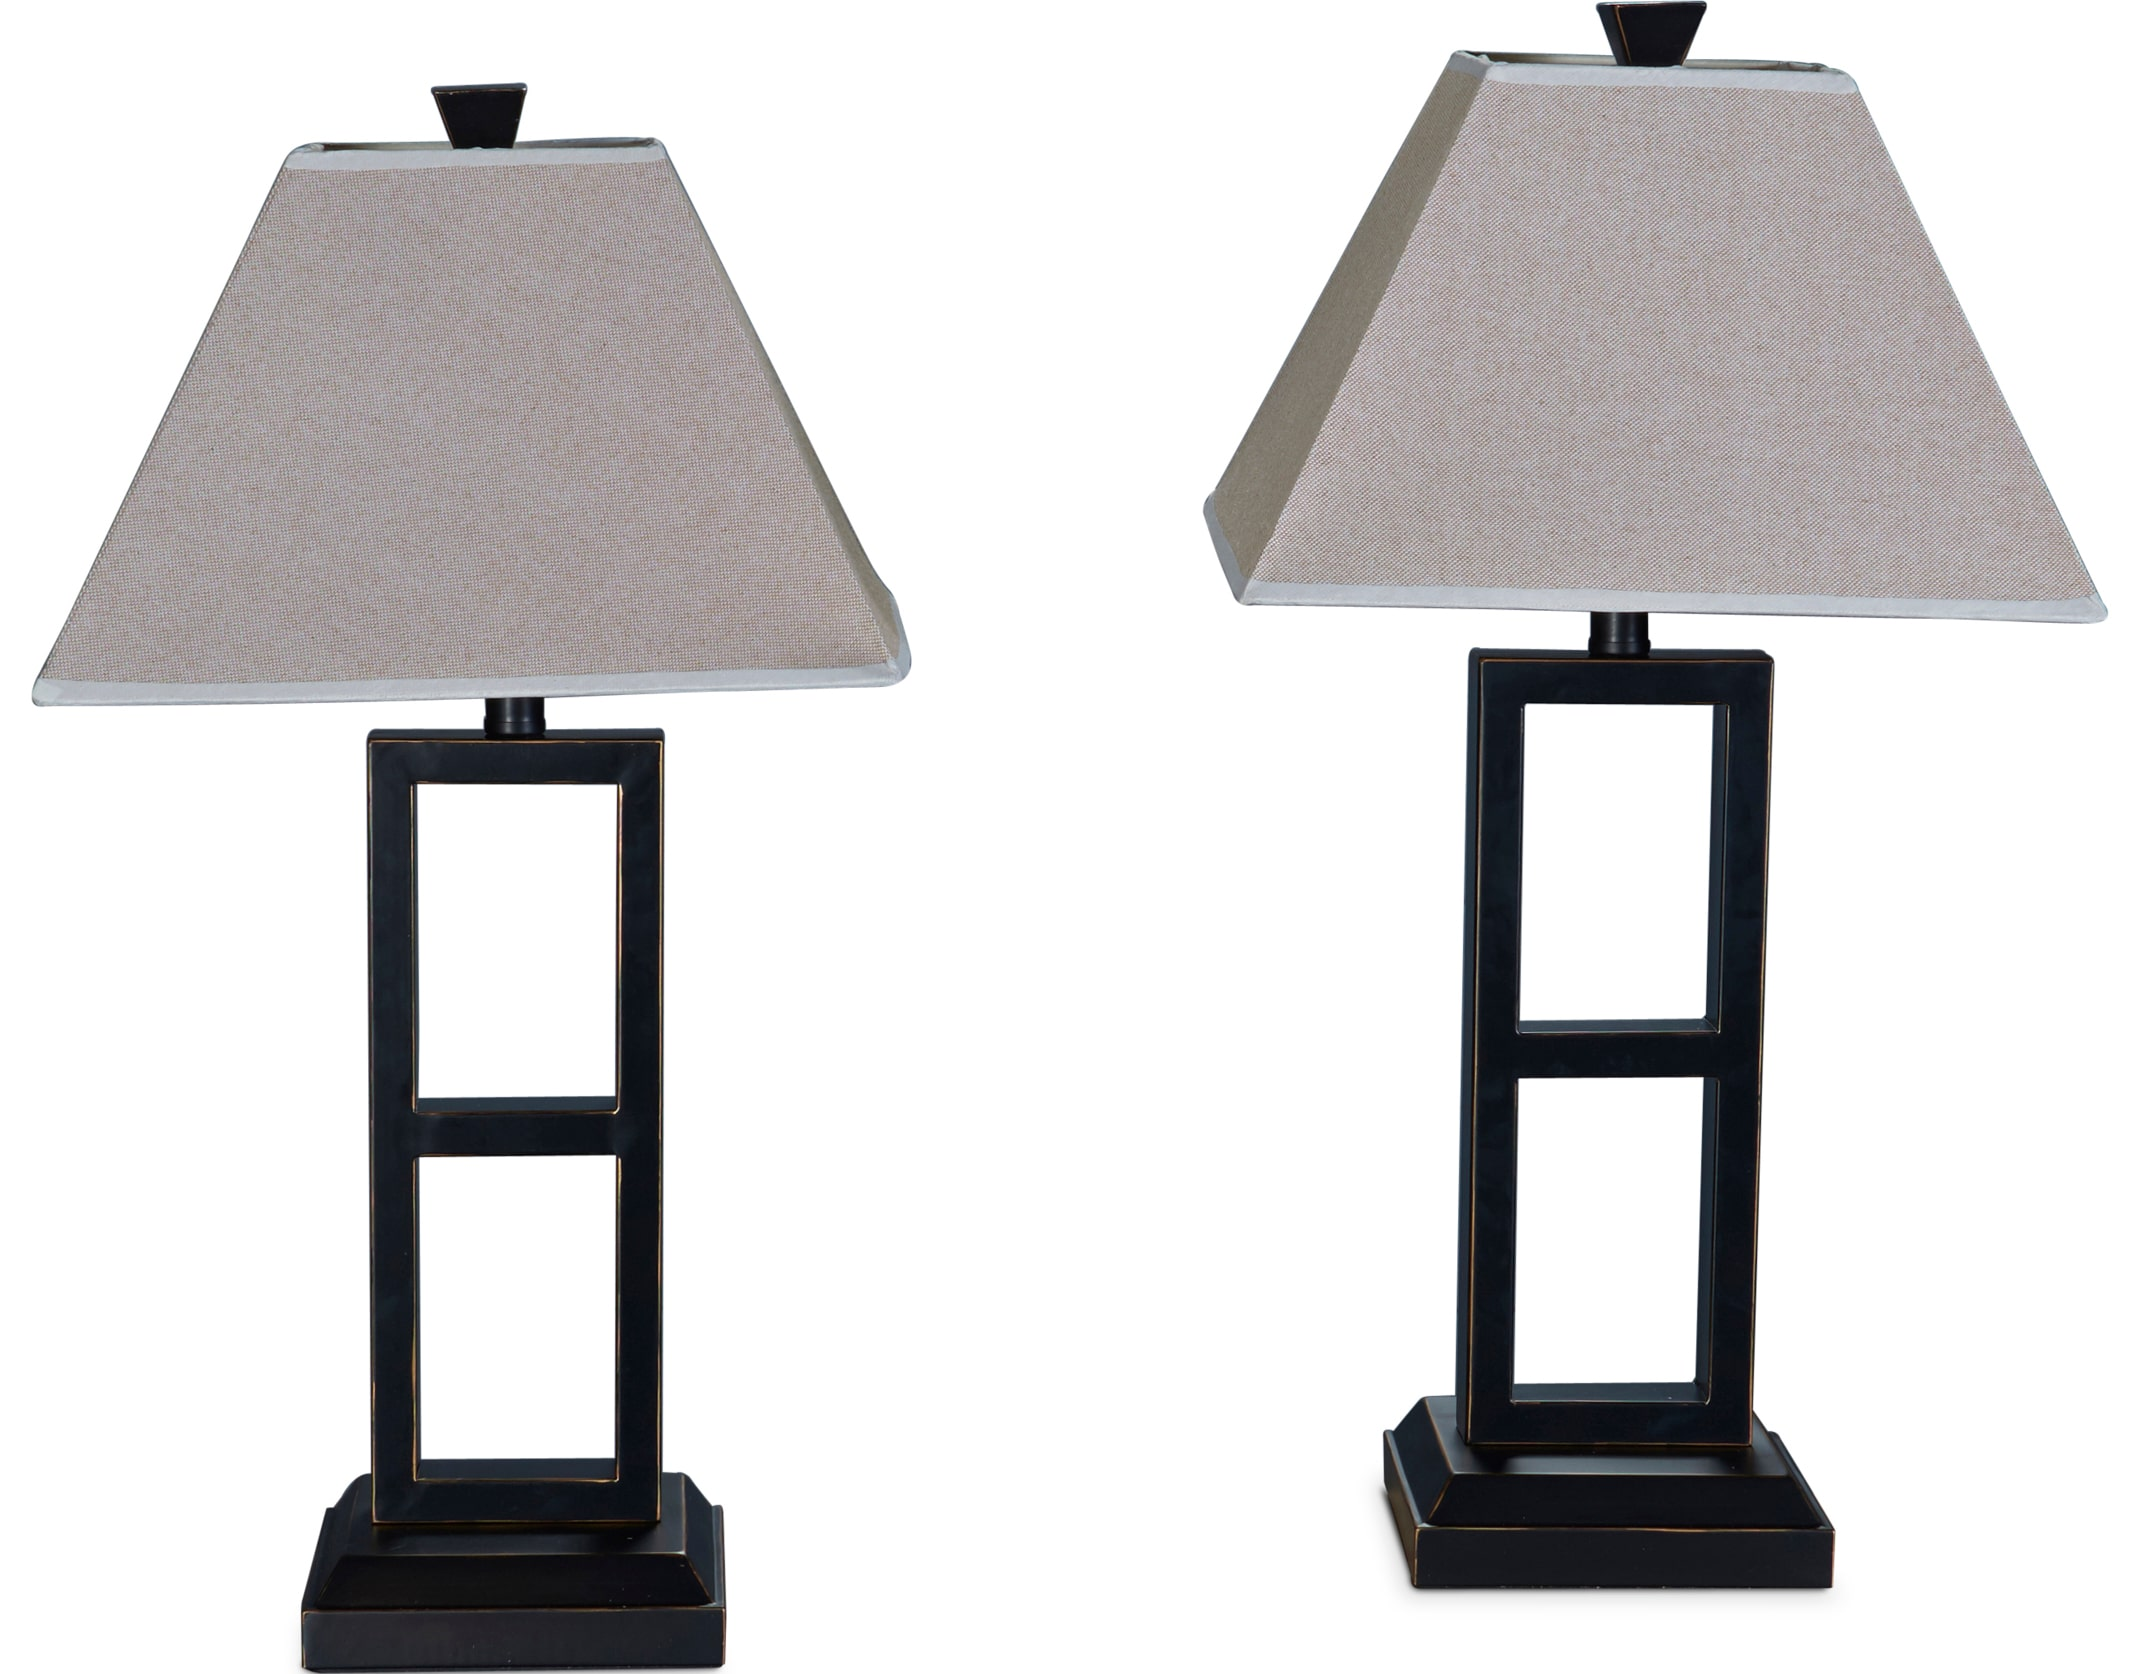 Table Lamps - Black